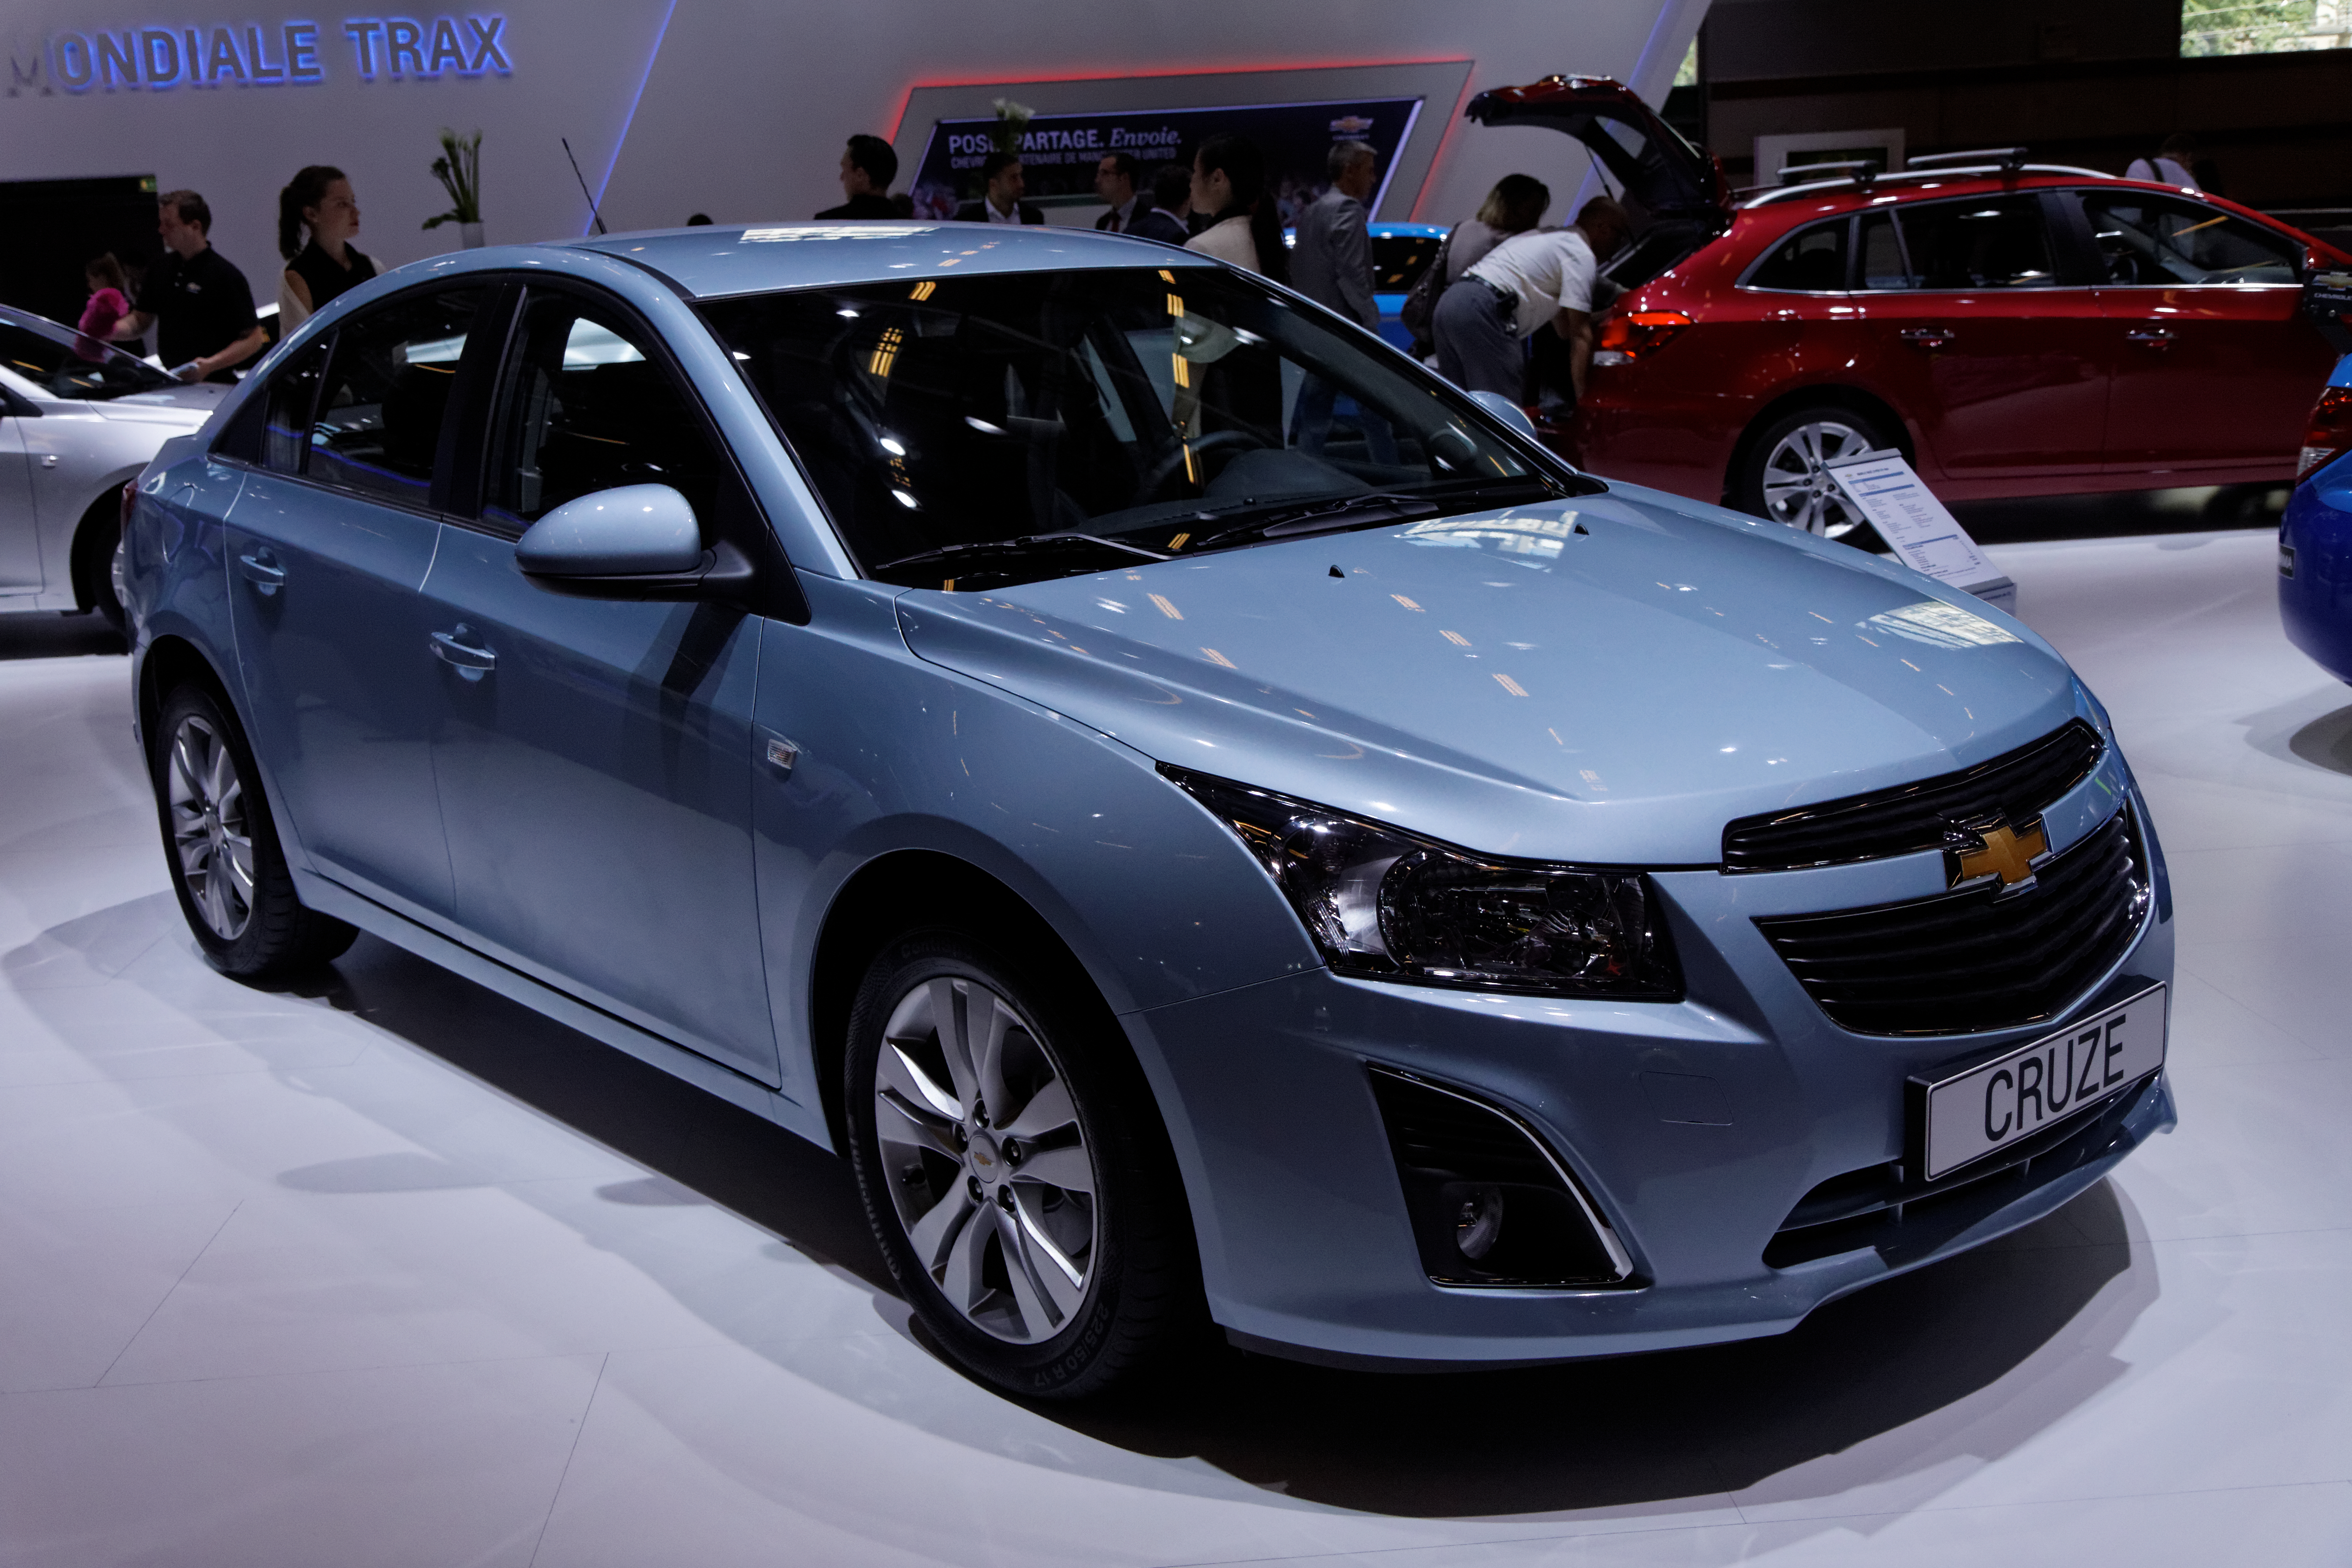 file chevrolet cruze mondial de l 39 automobile de paris 2012 wikimedia commons. Black Bedroom Furniture Sets. Home Design Ideas